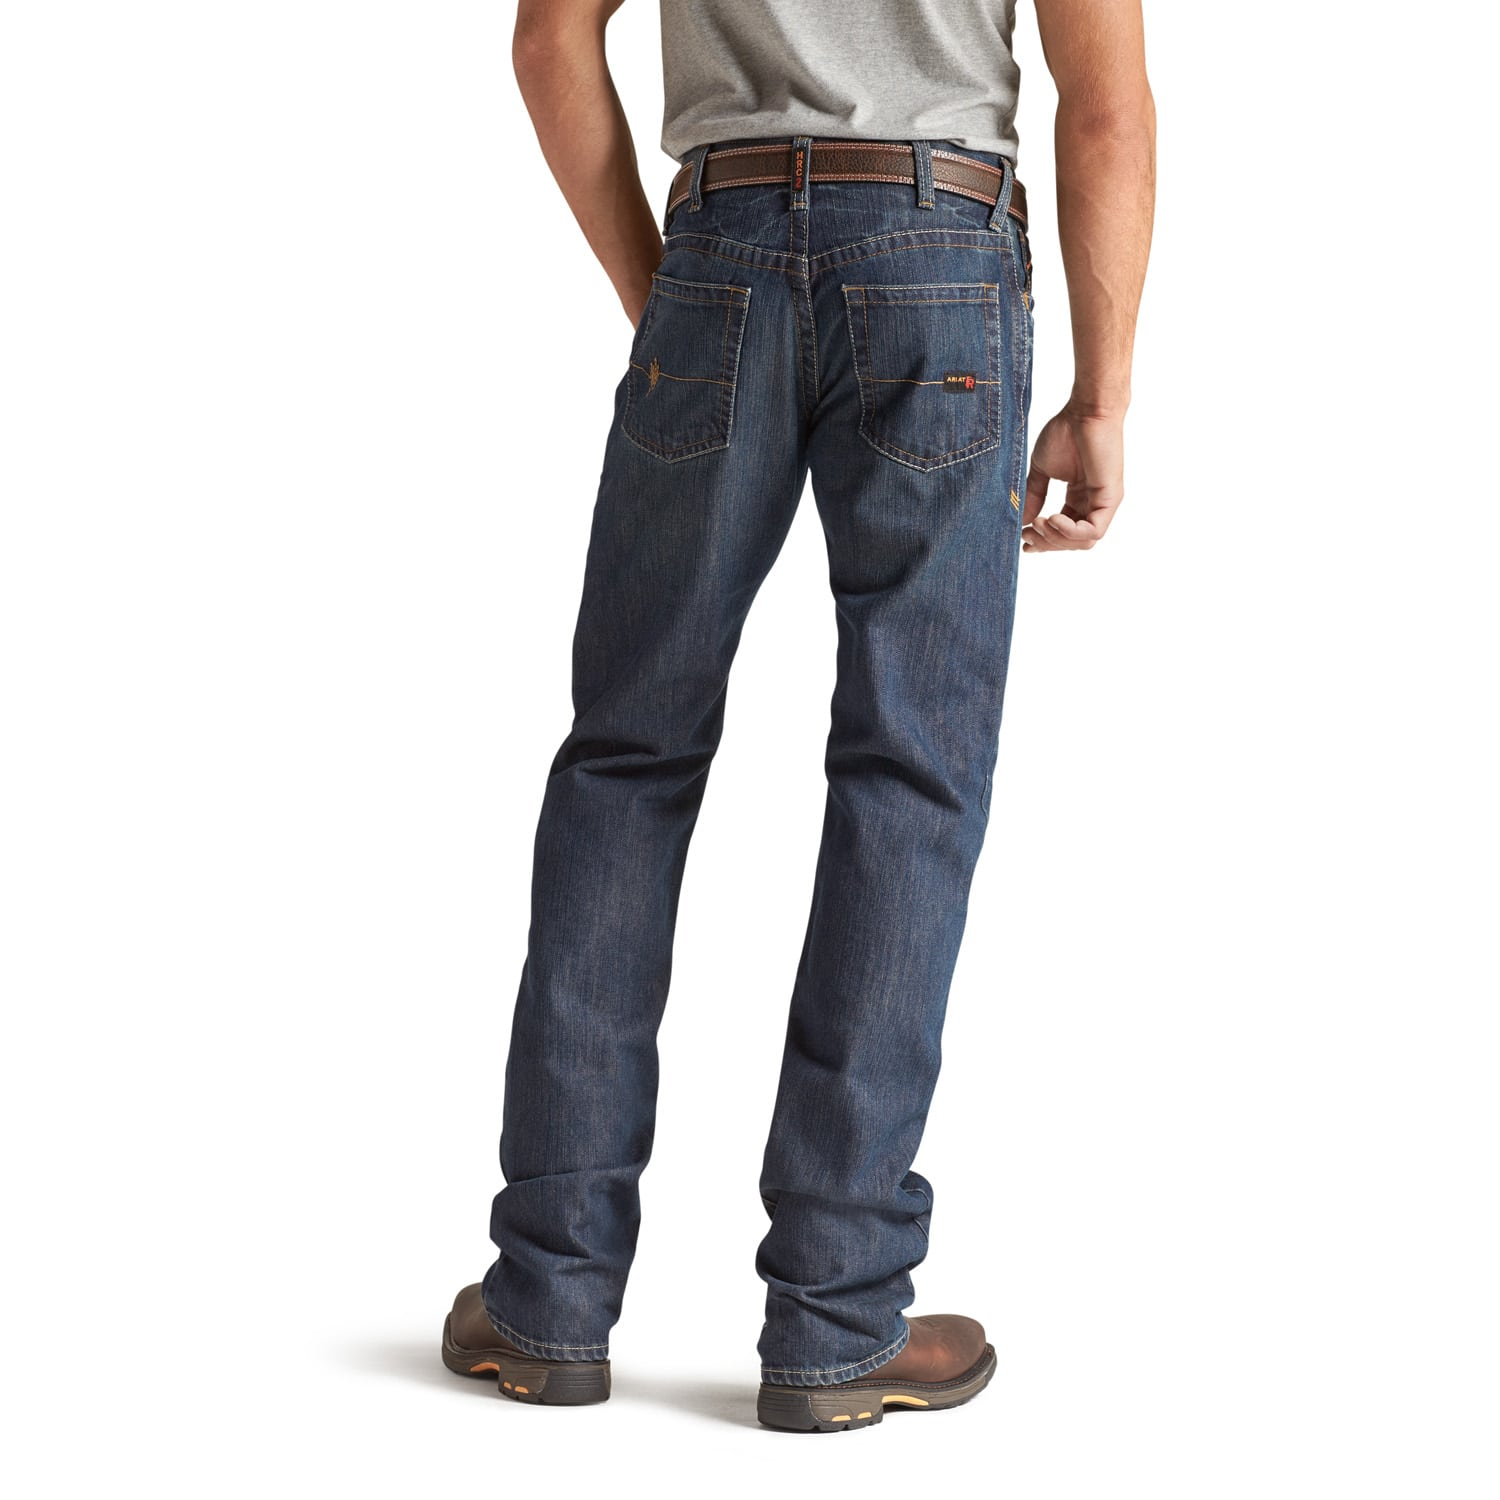 Ariat M4 Frc Jeans Low Rise Boot Cut 10012555